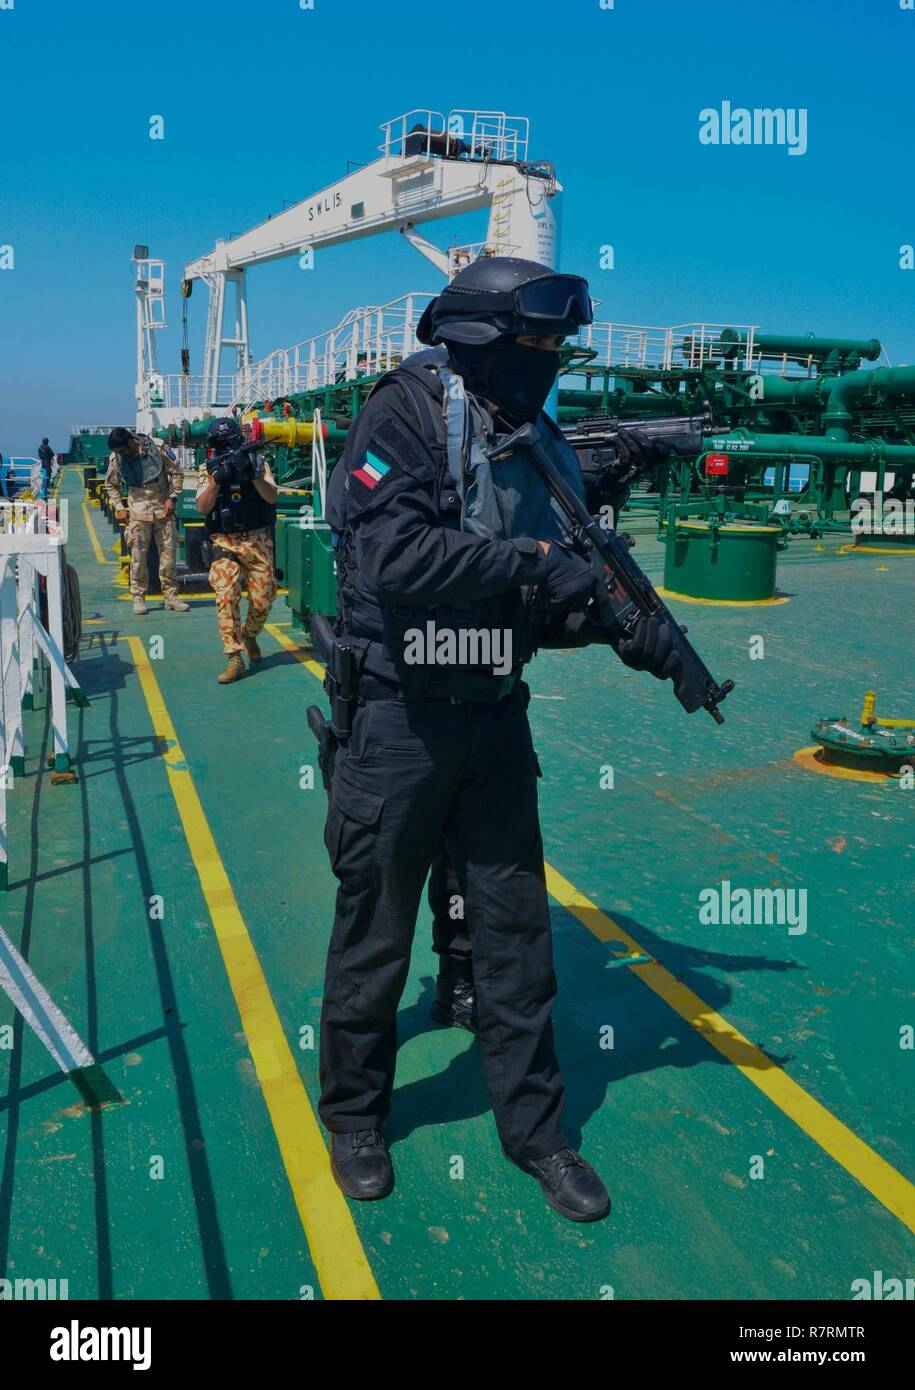 KUWAIT - Gulf Cooperation Council special operations forces conduct a simulated search and seizure of the hijacked oil tanker, the Hadiyah, April 3, in Kuwait territorial waters as part of exercise Eagle Resolve 2017. Stock Photo